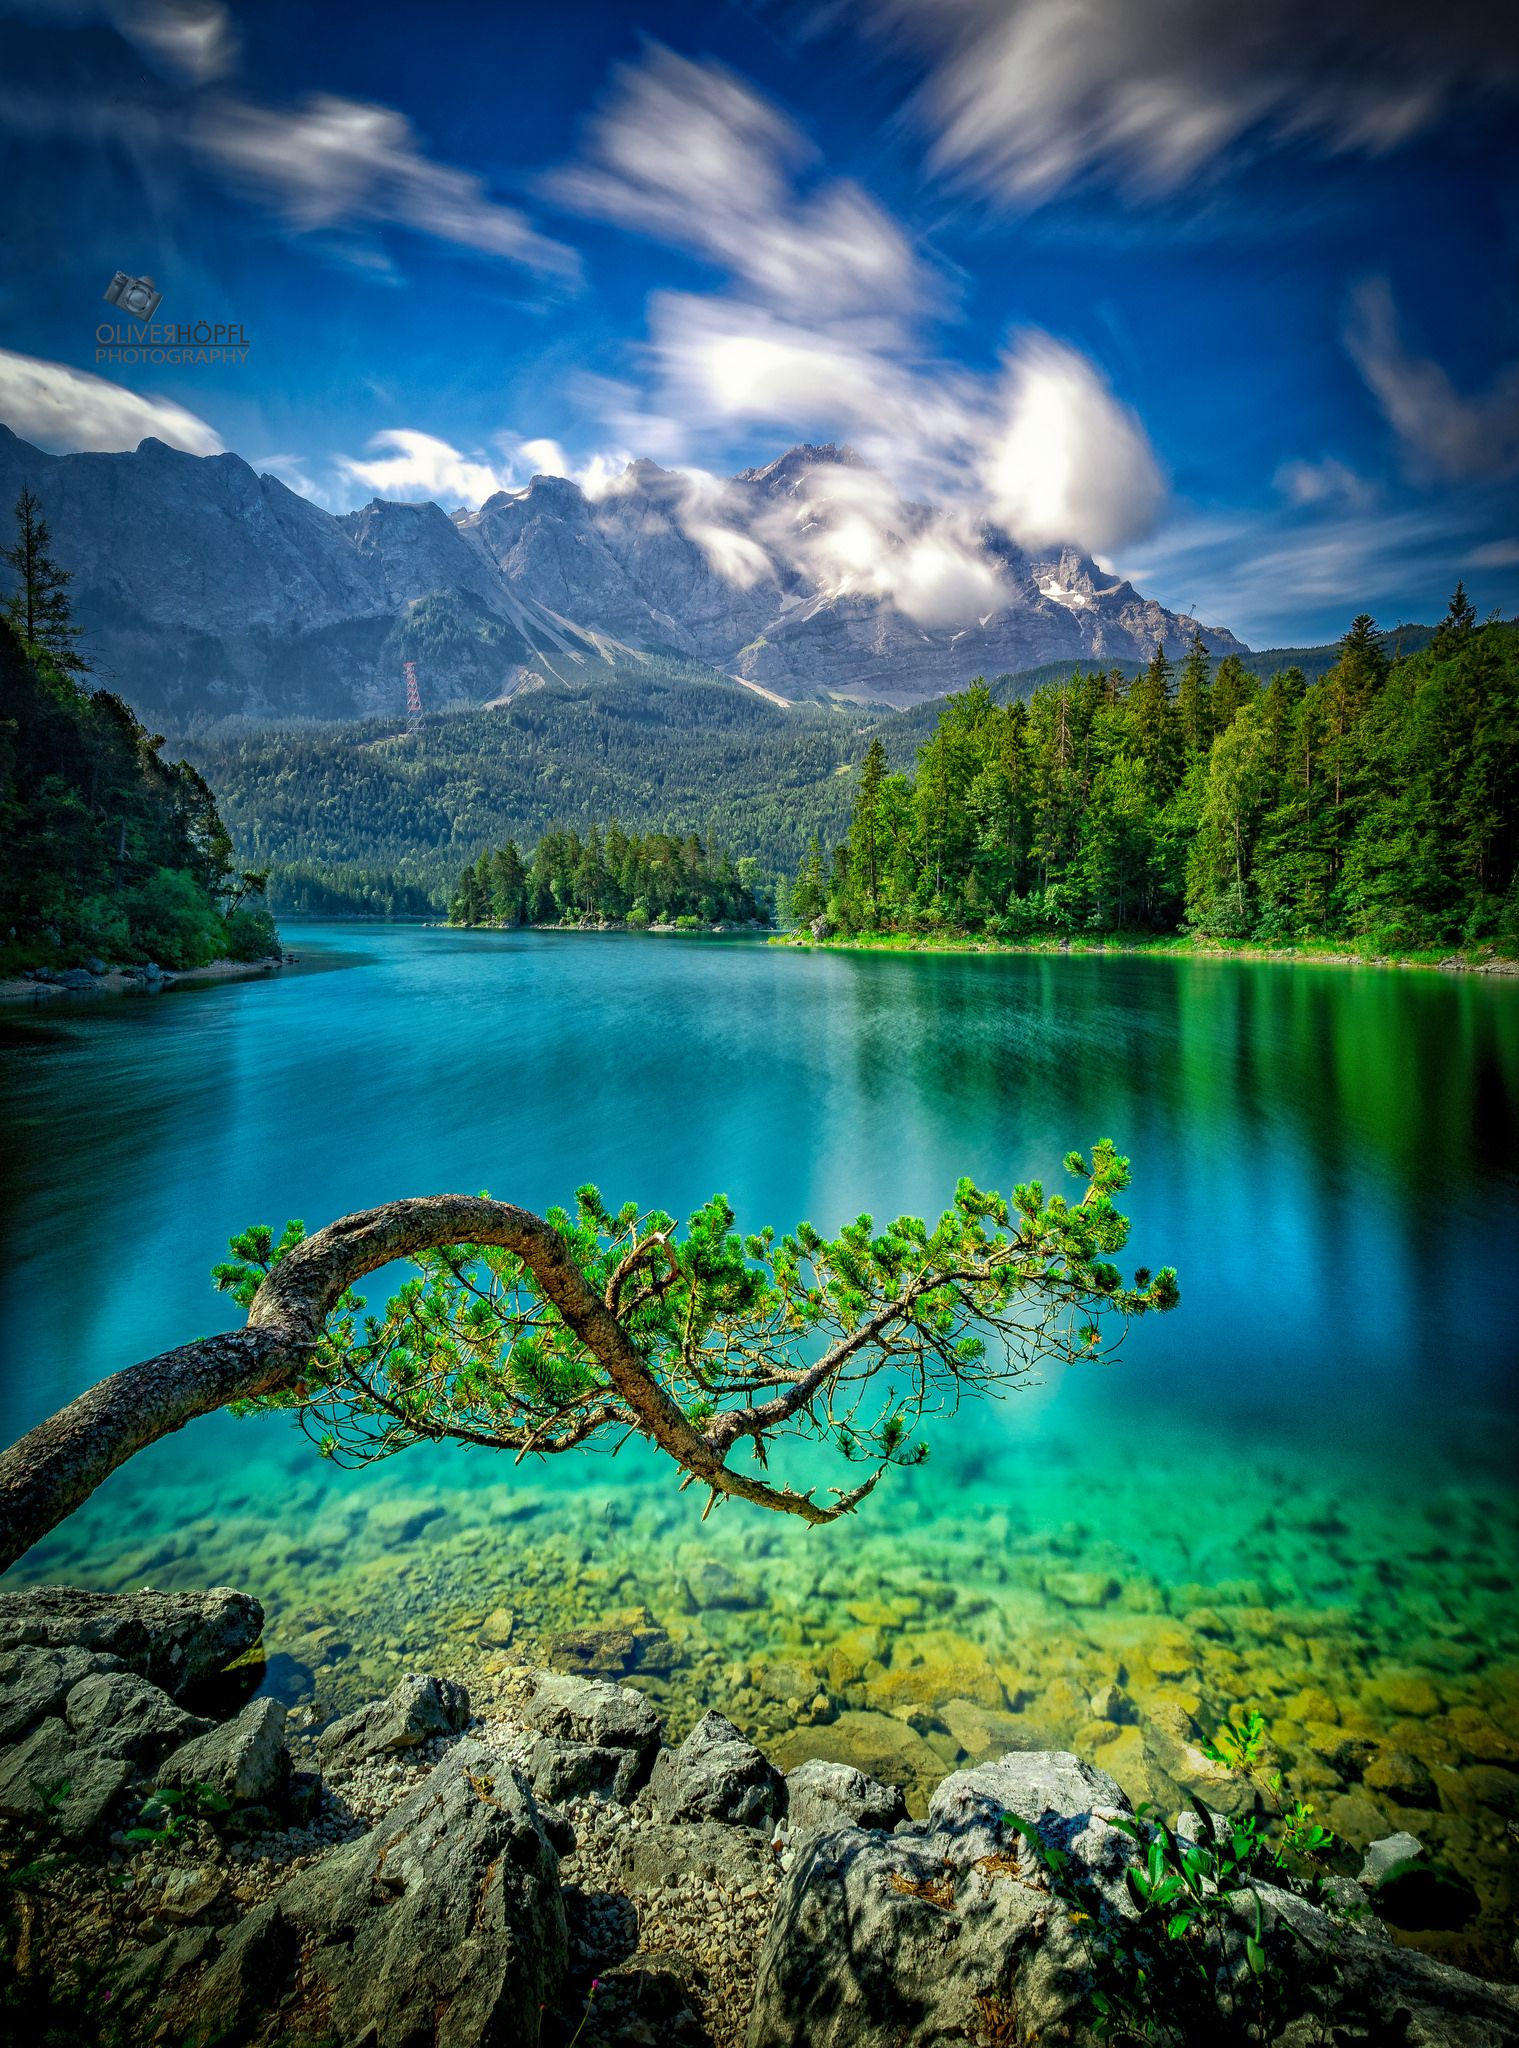 Eibsee Beautiful Nature Pictures Beautiful Photos Of Nature Waterfall Photography